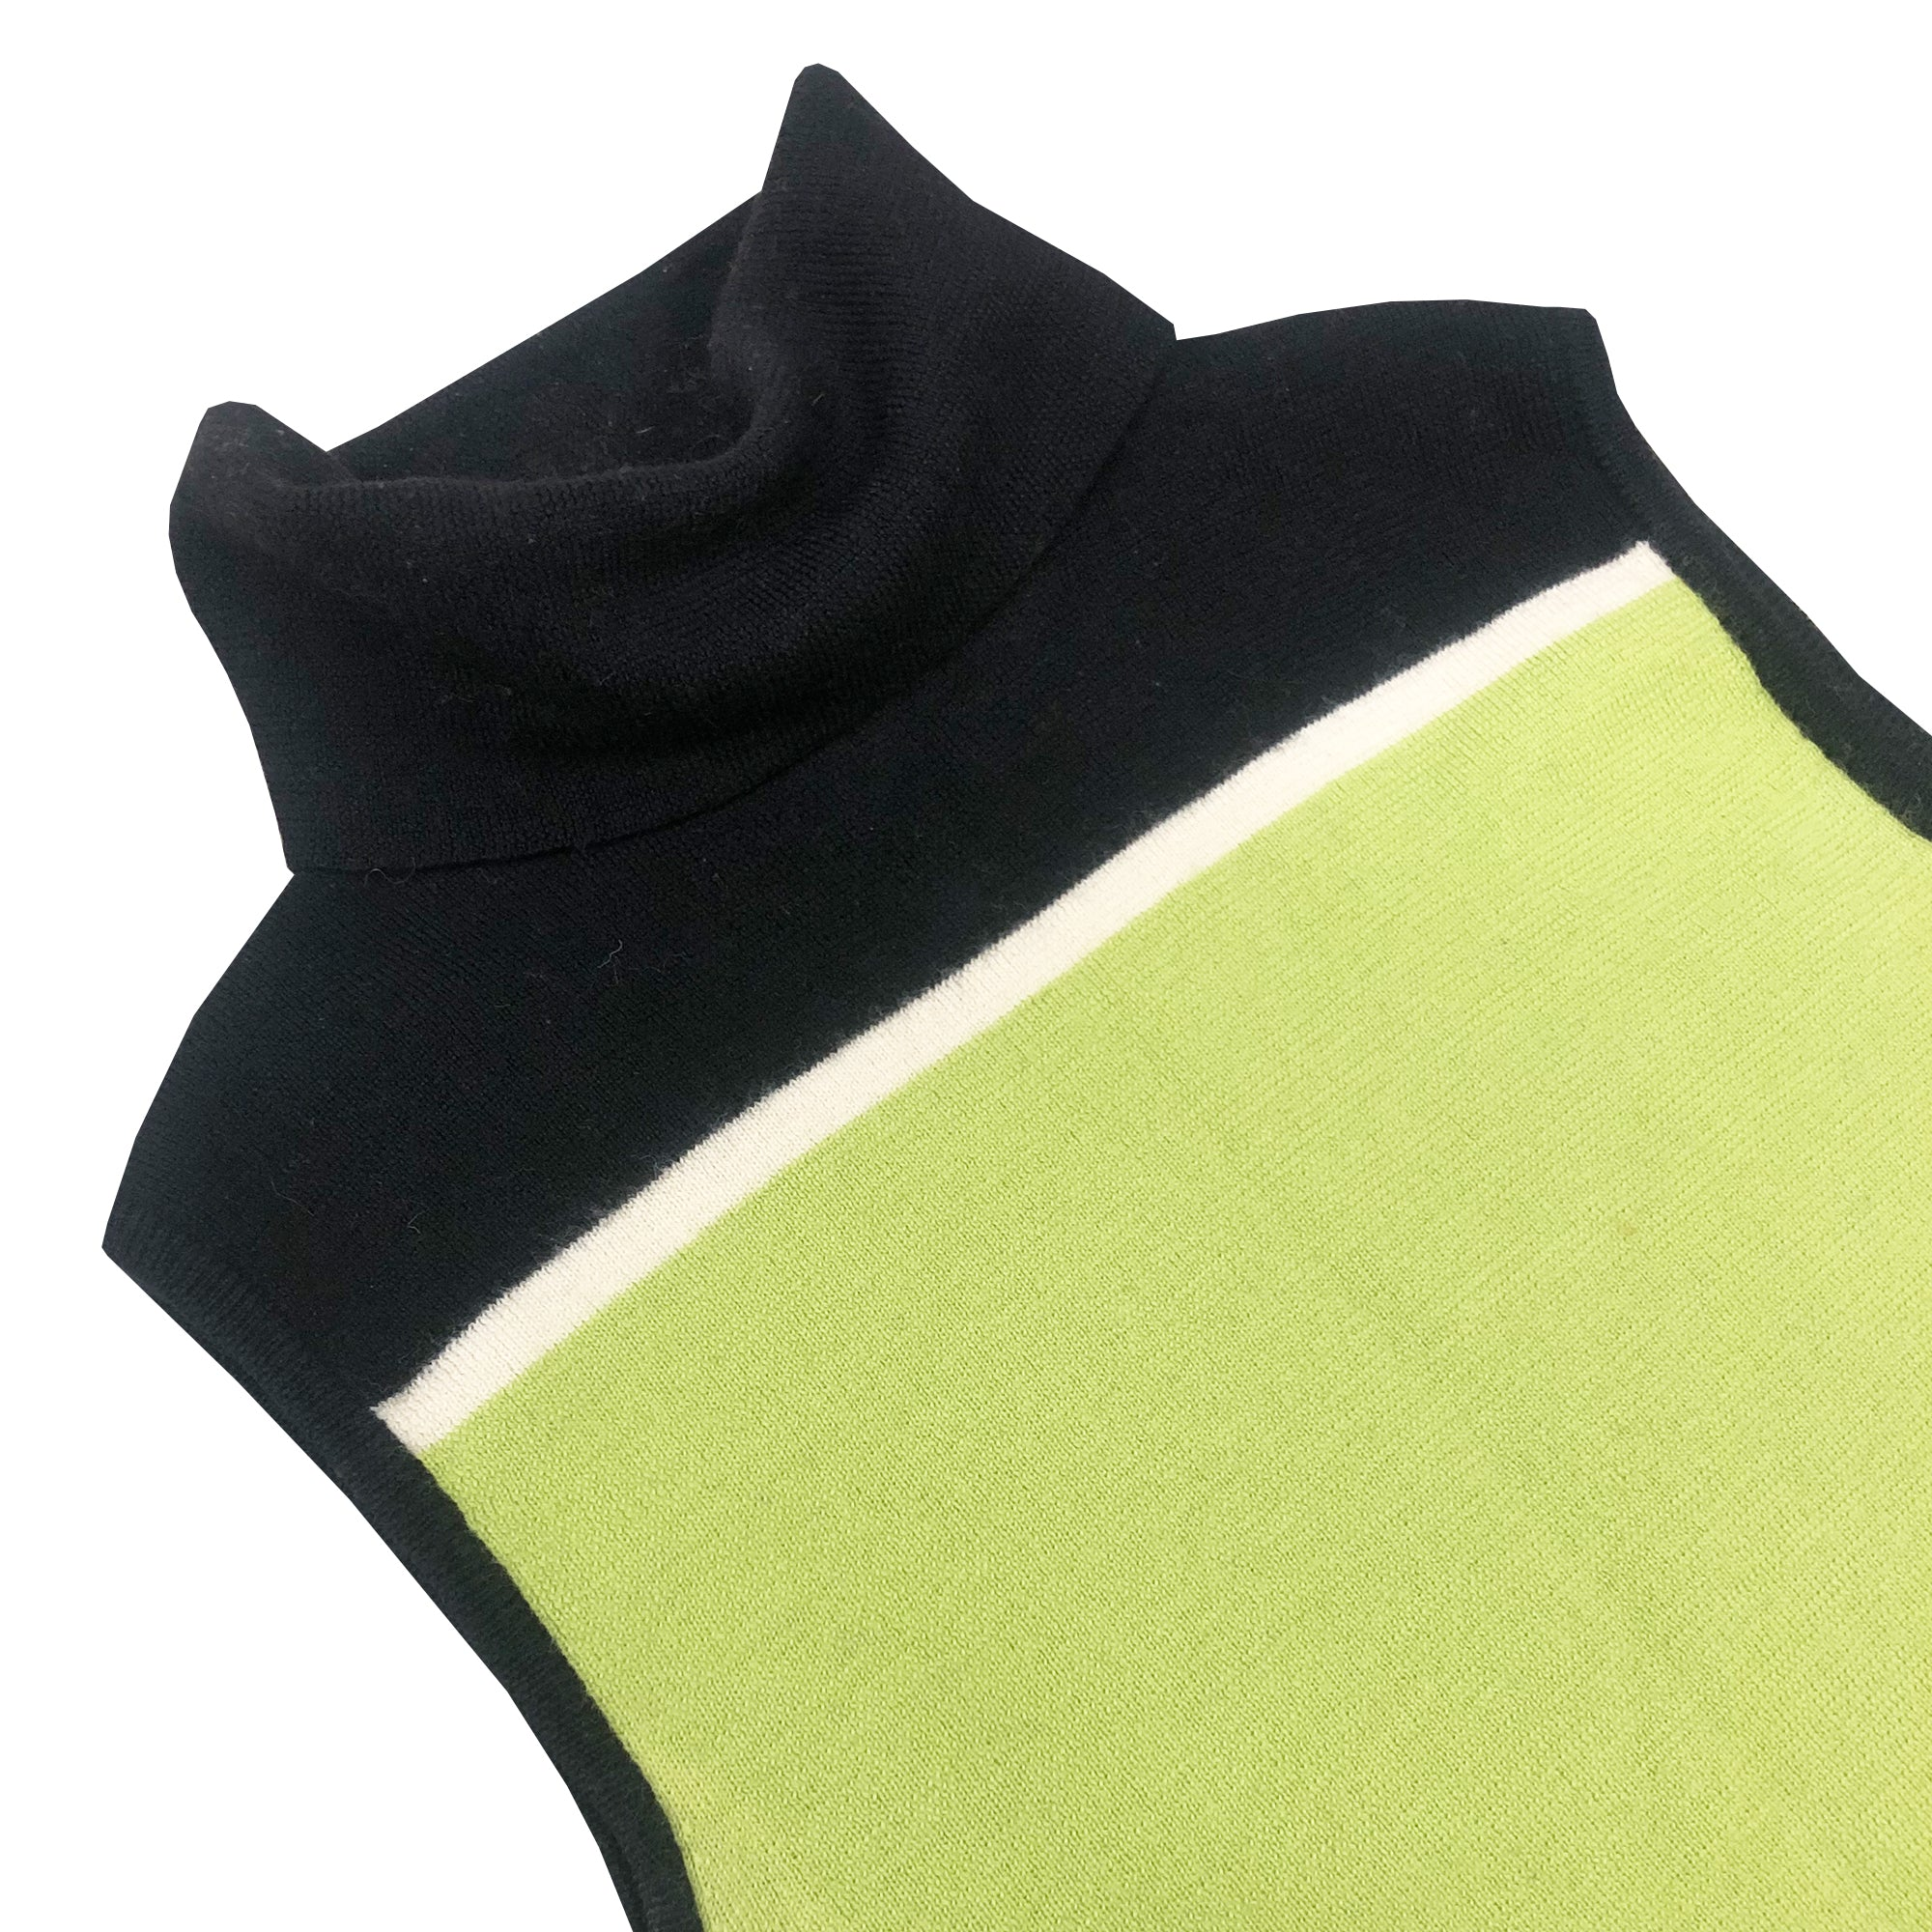 Moschino Knit Turtle Neck Vest (Green/Black) UK 6/8